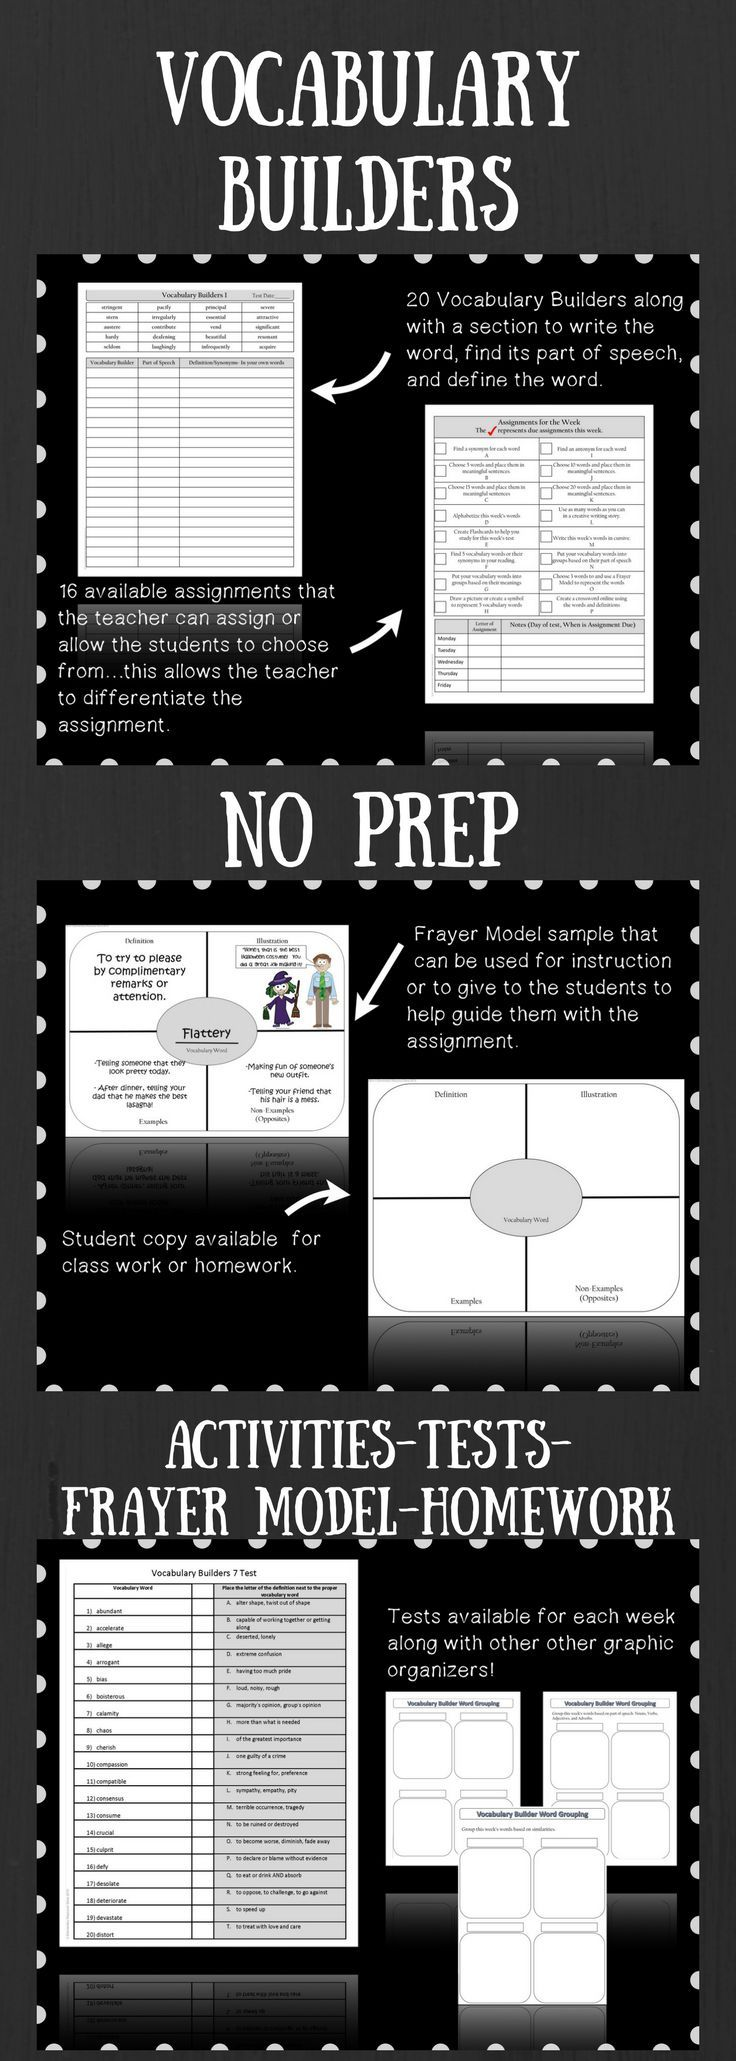 Vocabulary Builders 20 Week Unit...Each week, your students will be exposed to 20 vocabulary words that are synonyms for words they use every day.  Each week, similar words start to repeat and the students' vocabulary will begin to build.  Throughout the year, you'll see your students' vocabulary take off! There are 16 possible activities for each week along with a class work and homework planner.